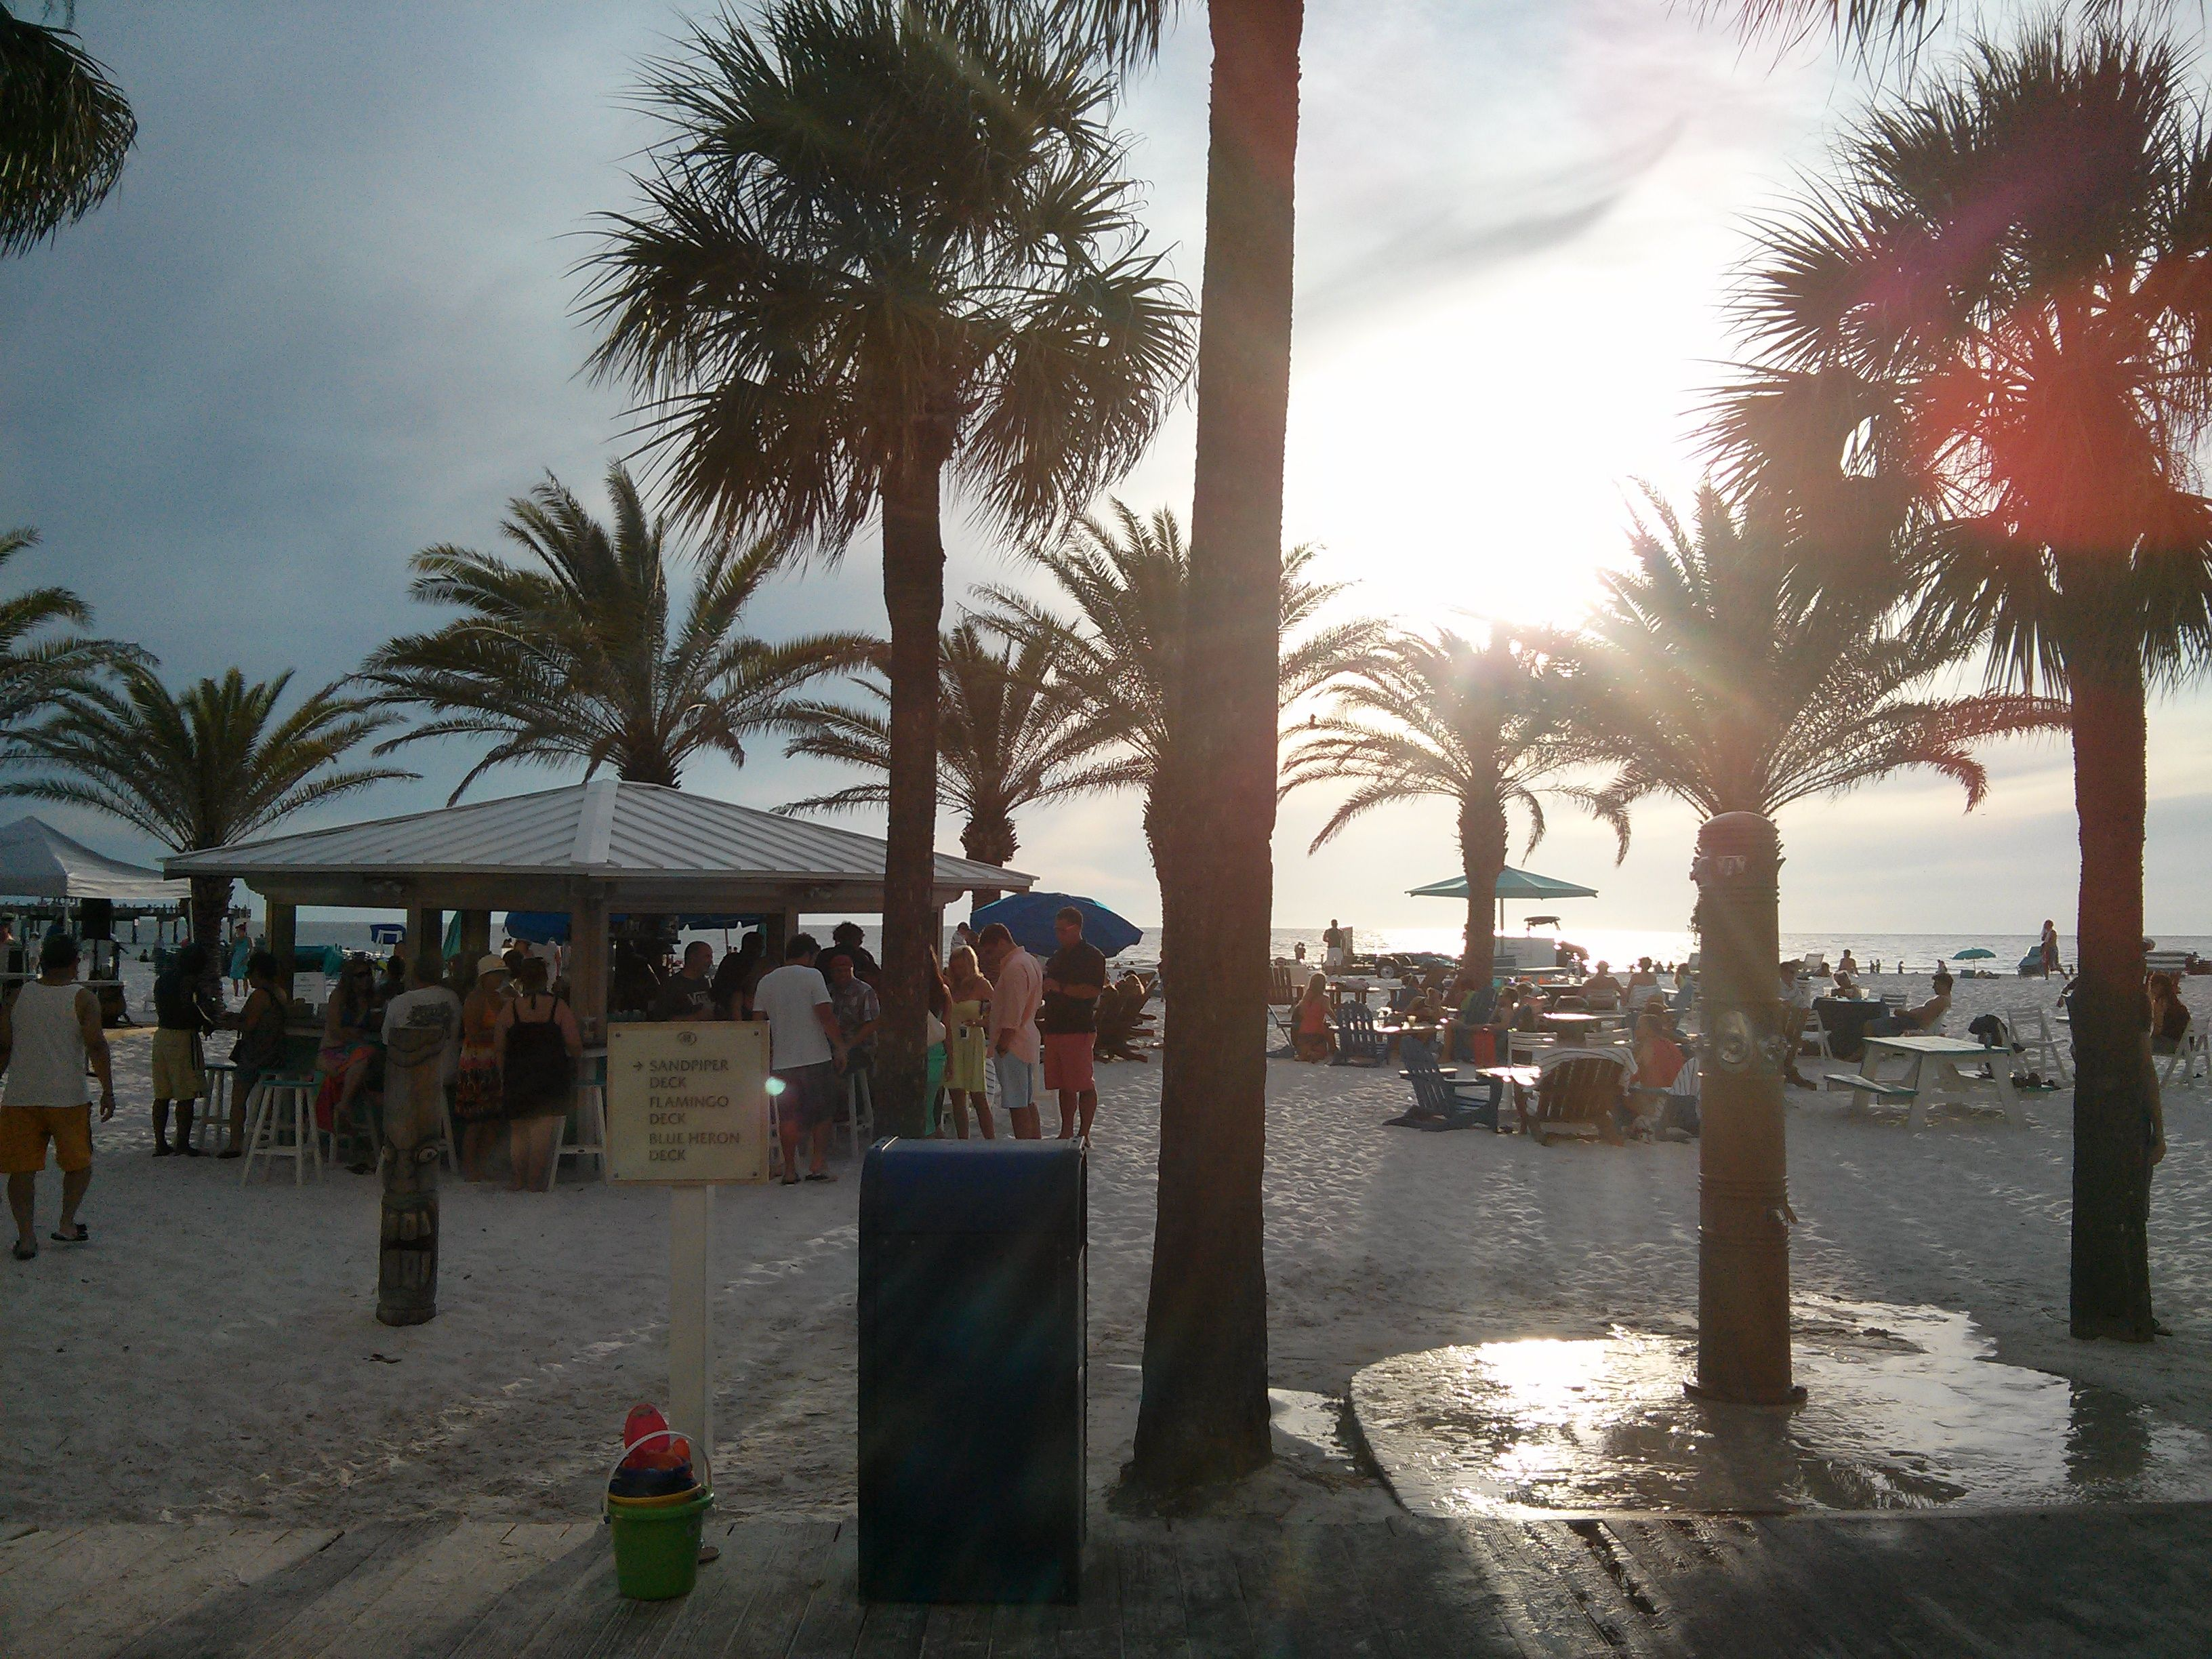 Ready for business at the hilton clearwater beach tiki bars pinterest clearwater beach clearwater beach resorts and beach resorts